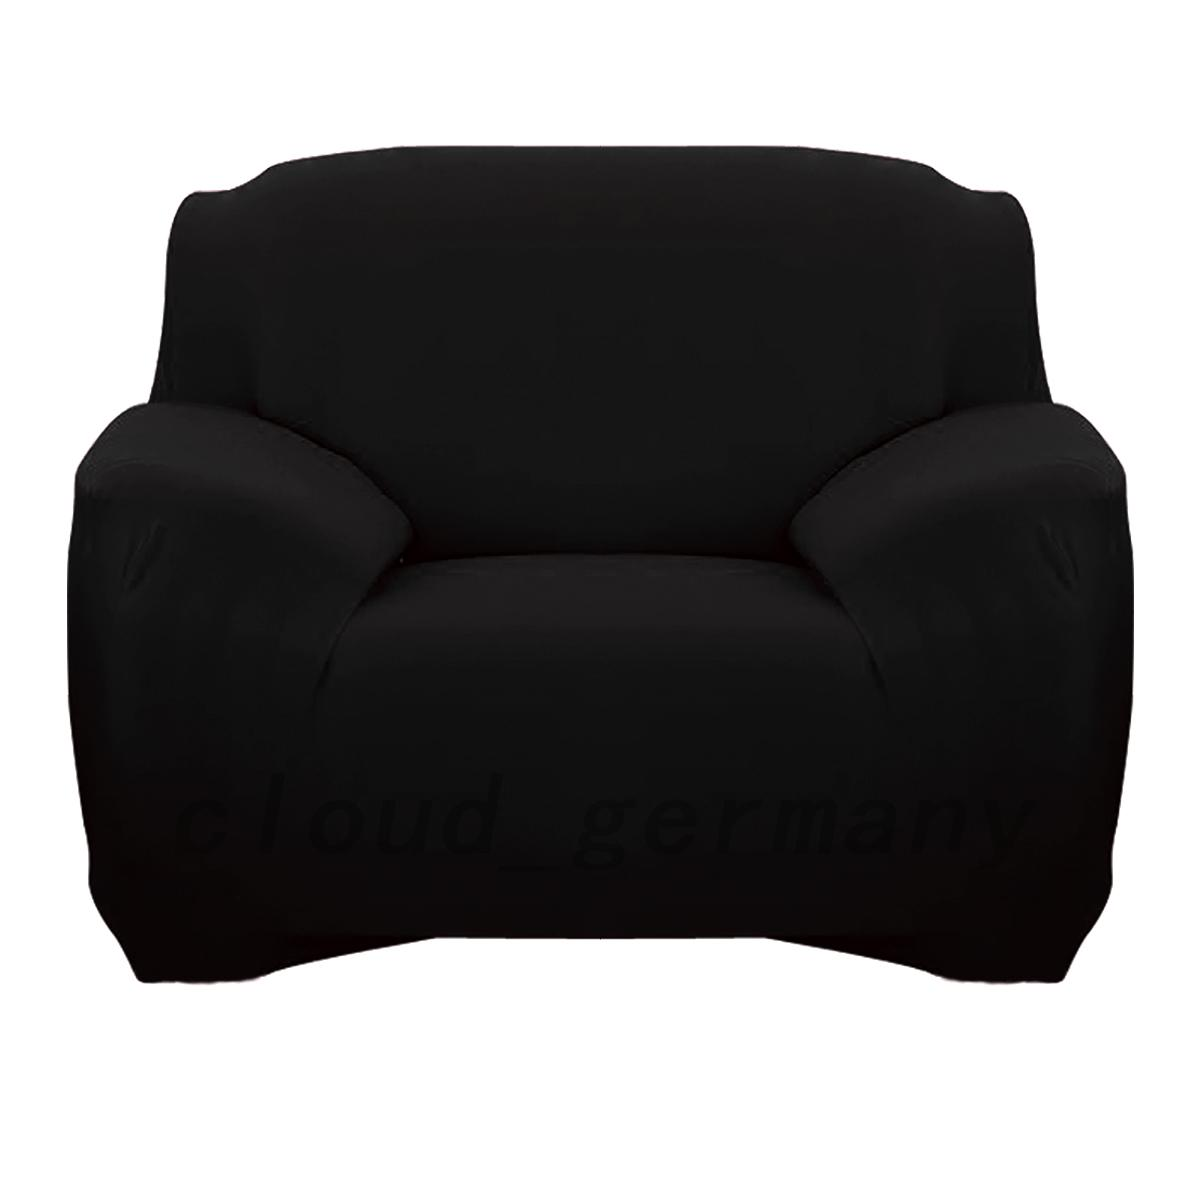 sofahussen sofaabdeckung elastische couchhusse polyester 1 2 3 sitzer sofadekor ebay. Black Bedroom Furniture Sets. Home Design Ideas